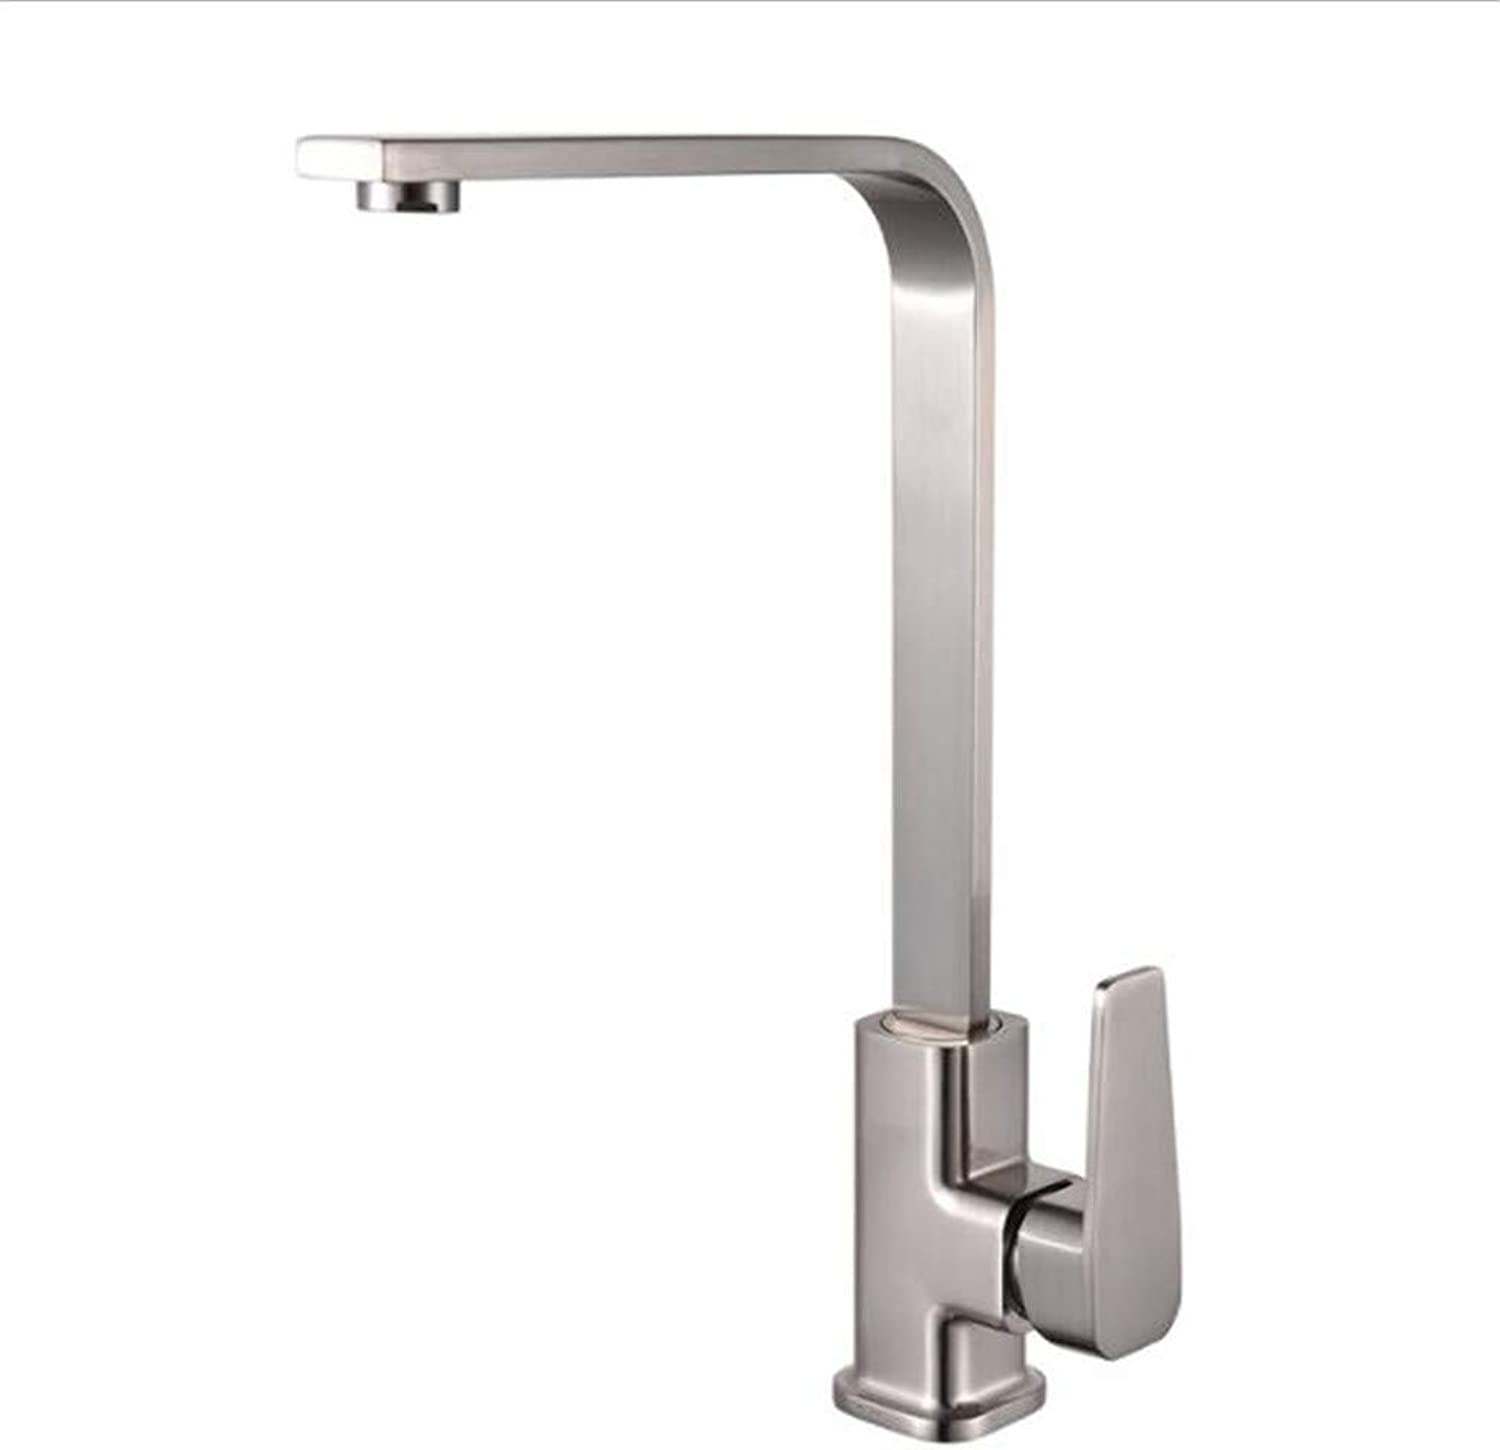 Bathroom Sink Basin Lever Mixer Tap Bathroom Sanitary Ware Cold and Hot Vegetable Basin Faucet redating Kitchen Faucet